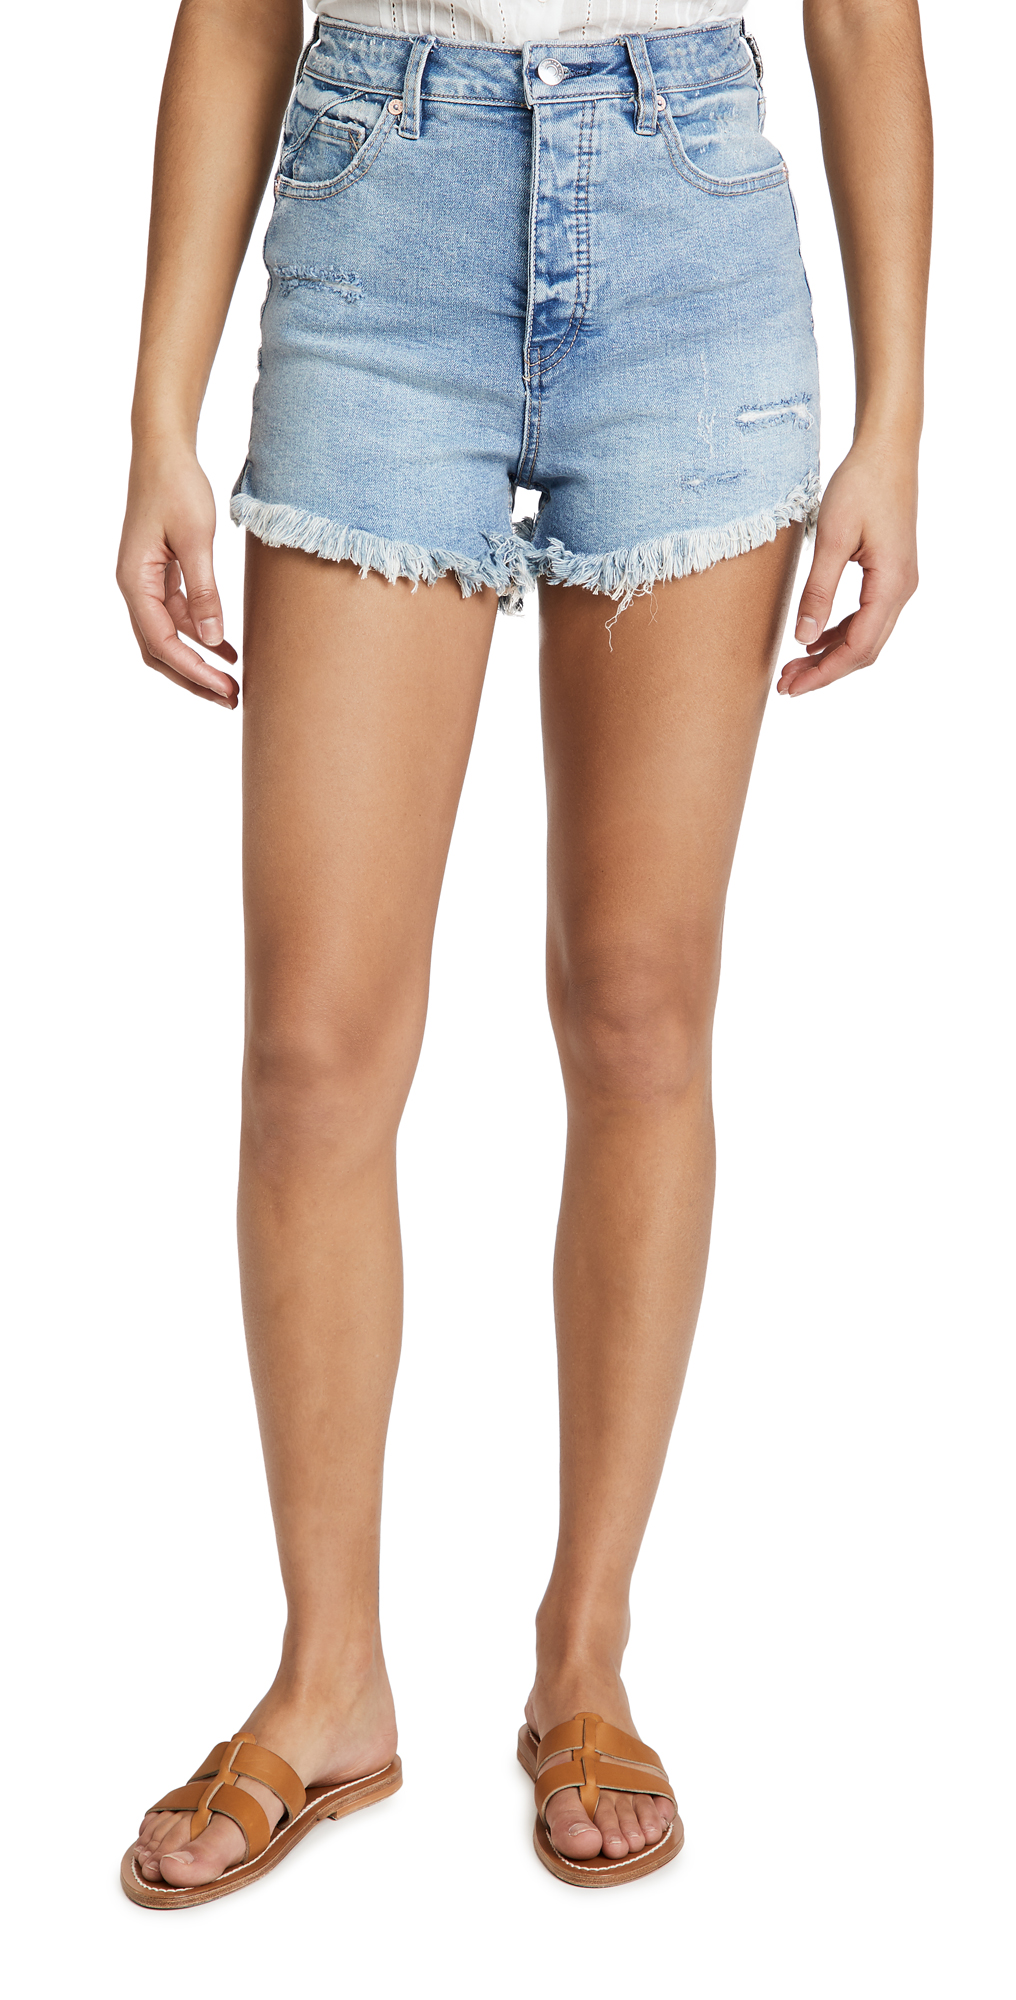 Free People Curvy Vintage High Rise Shorts